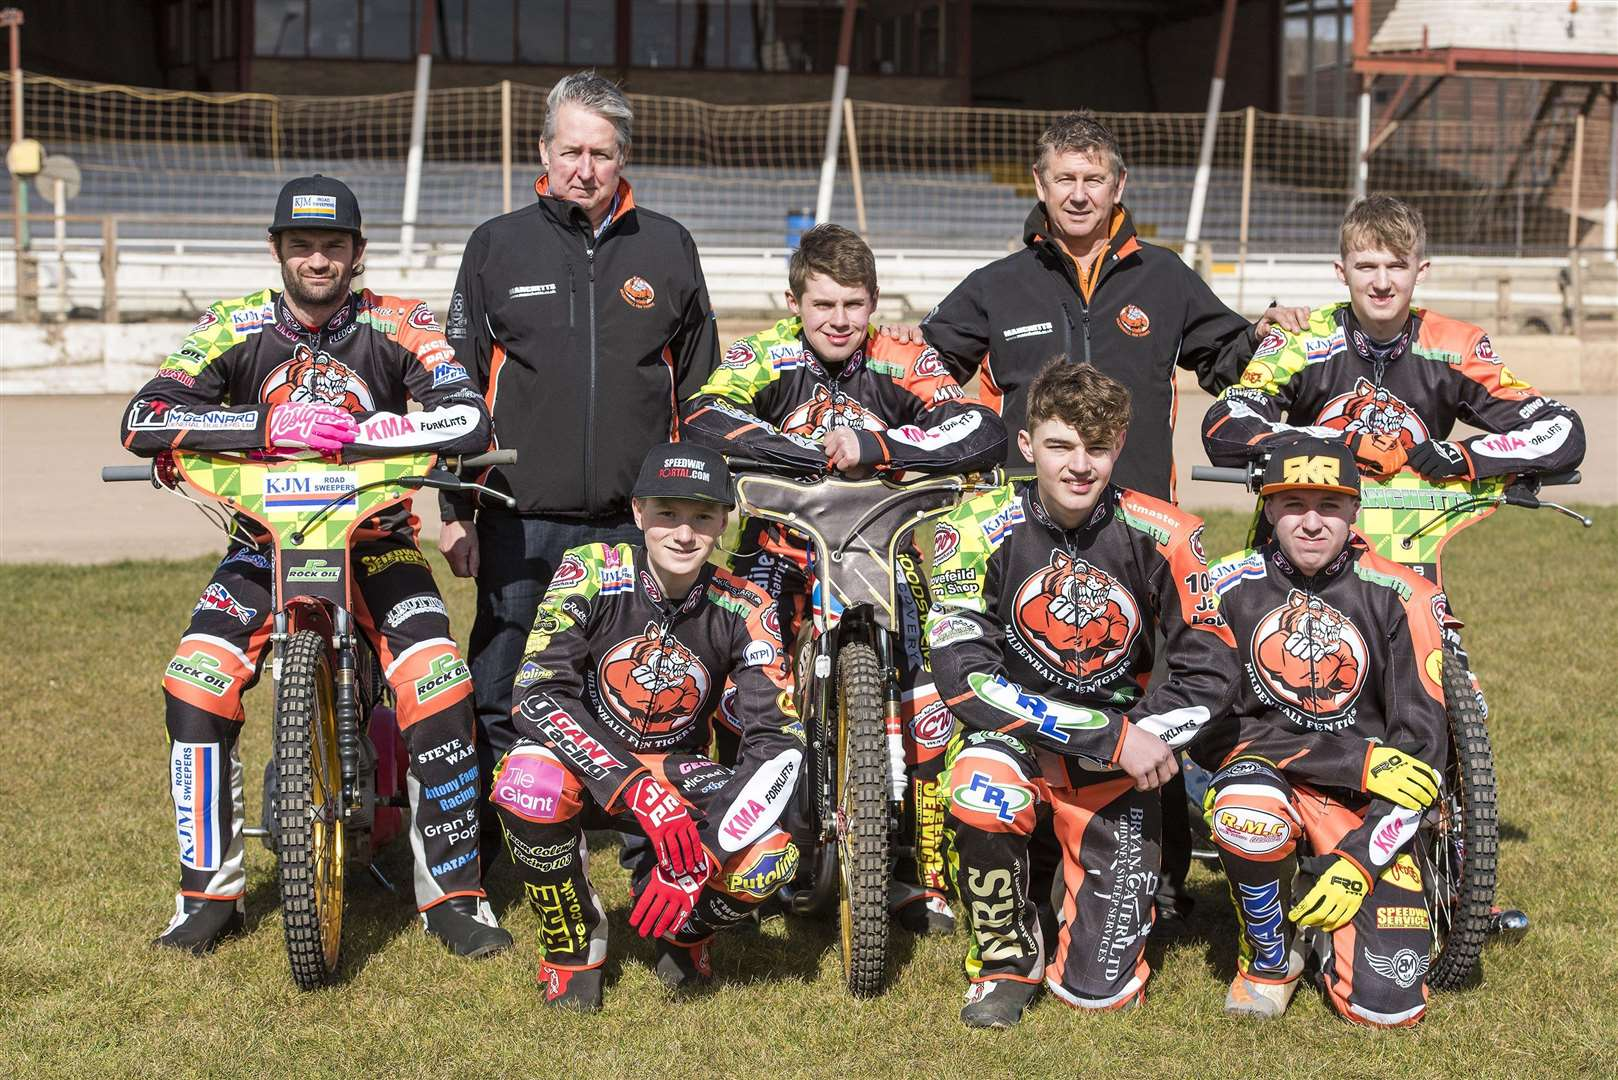 Mildenhall Fen Tigers Pre season practice day...Mildenhall Fen Tigers 2018 - Back row Left to right: Danny Ayres, Phil Kirk (team manager), Josh Bailey, Kevin Jolly (promoter), Jordan Jenkins. Front row left to right: Drew Kemp, Sam Bebee, Ryan Kingsley...Picture Mark Westley. (4710583)